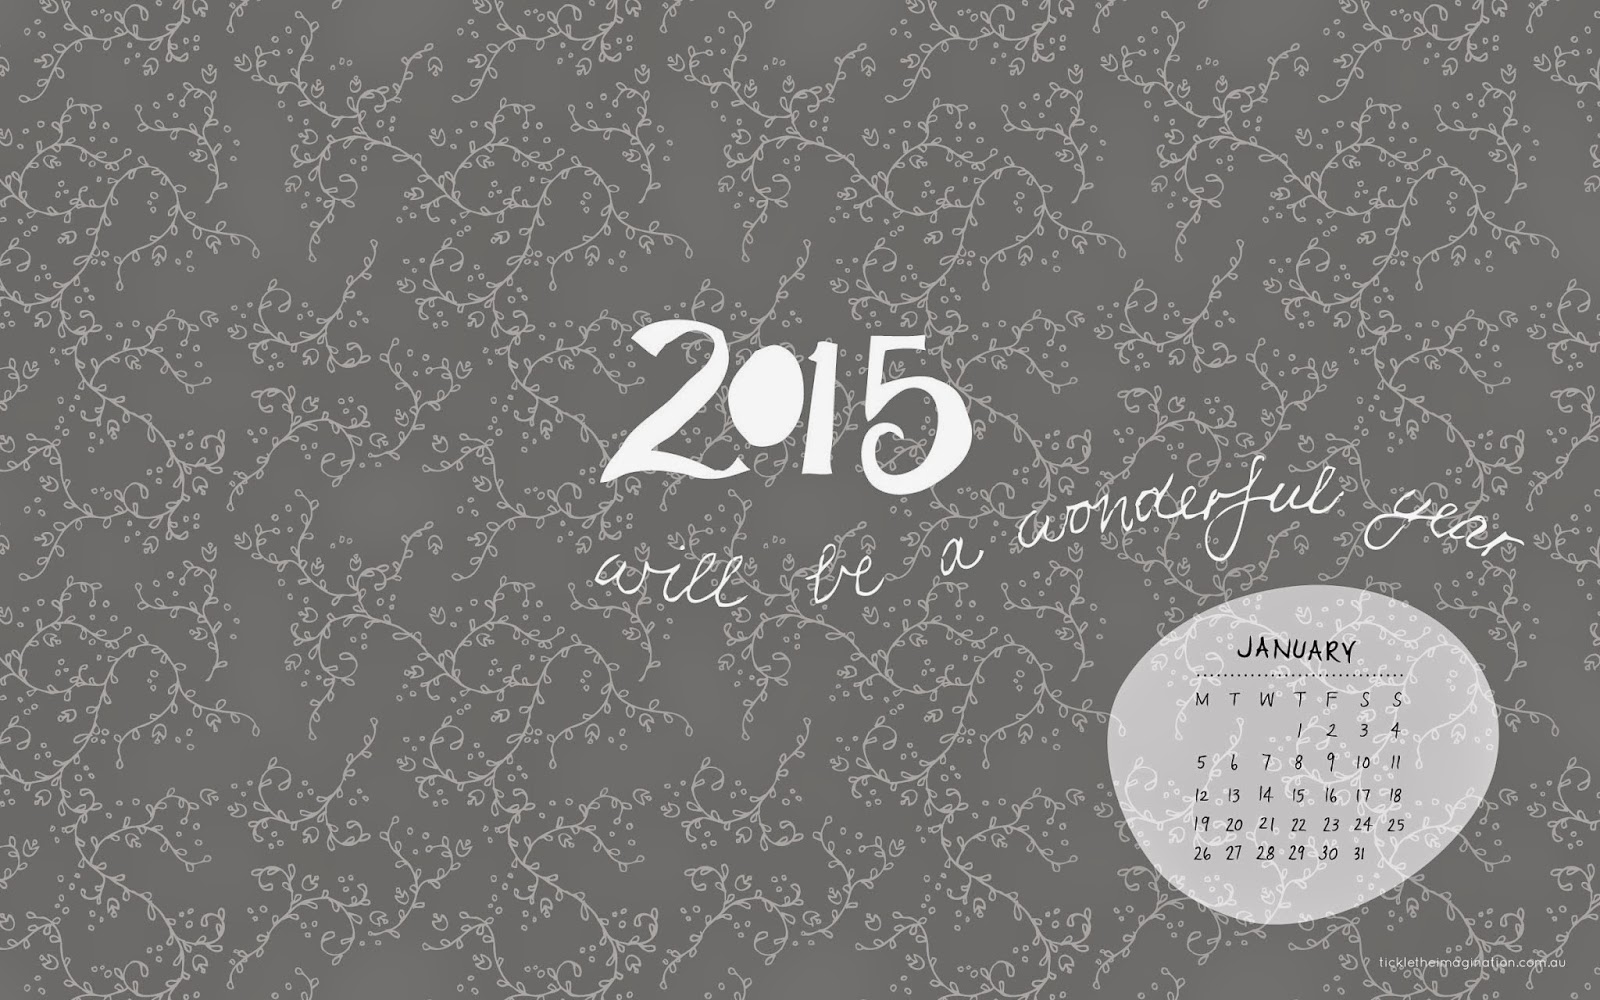 http://www.tickletheimagination.com.au/images/2015%20desktop%20calendars/january---2015-will-be-a-wonderful-year.jpg